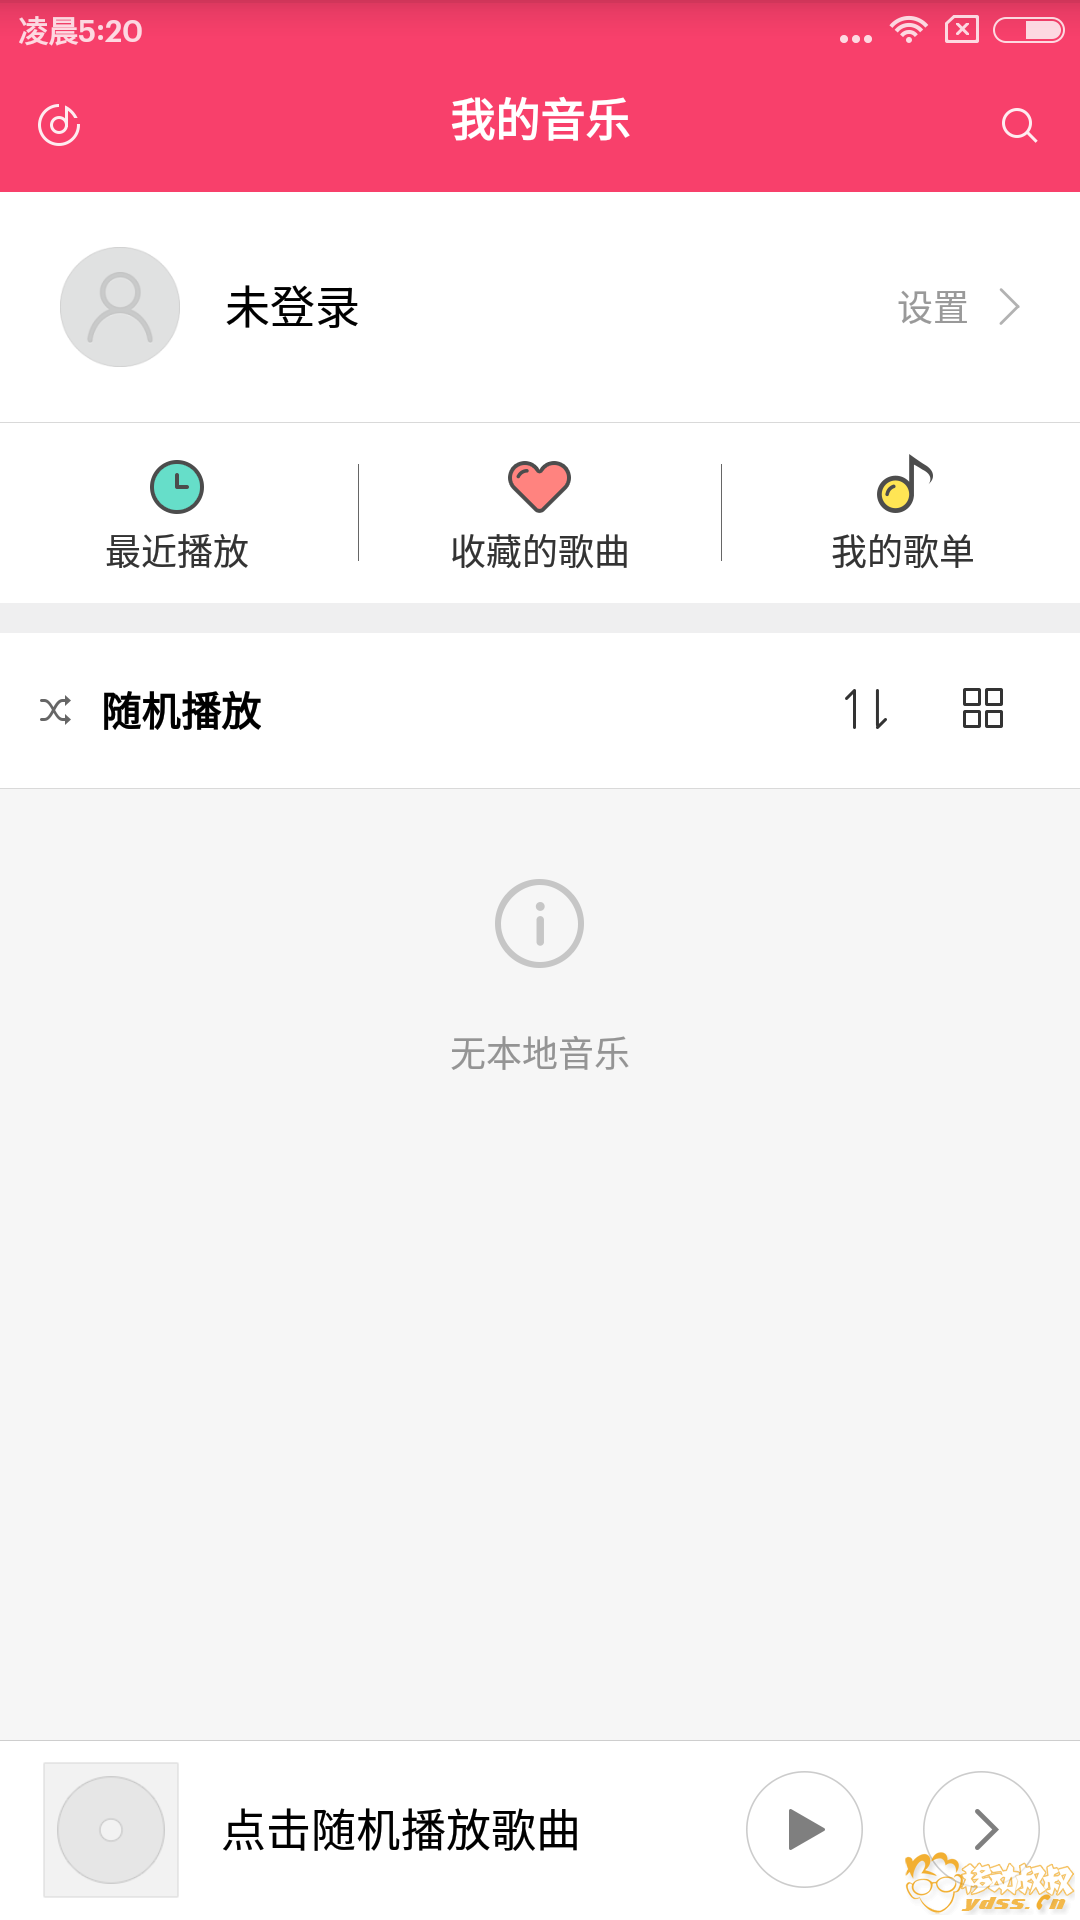 Screenshot_2018-02-12-05-20-31-810_com.miui.playe.png